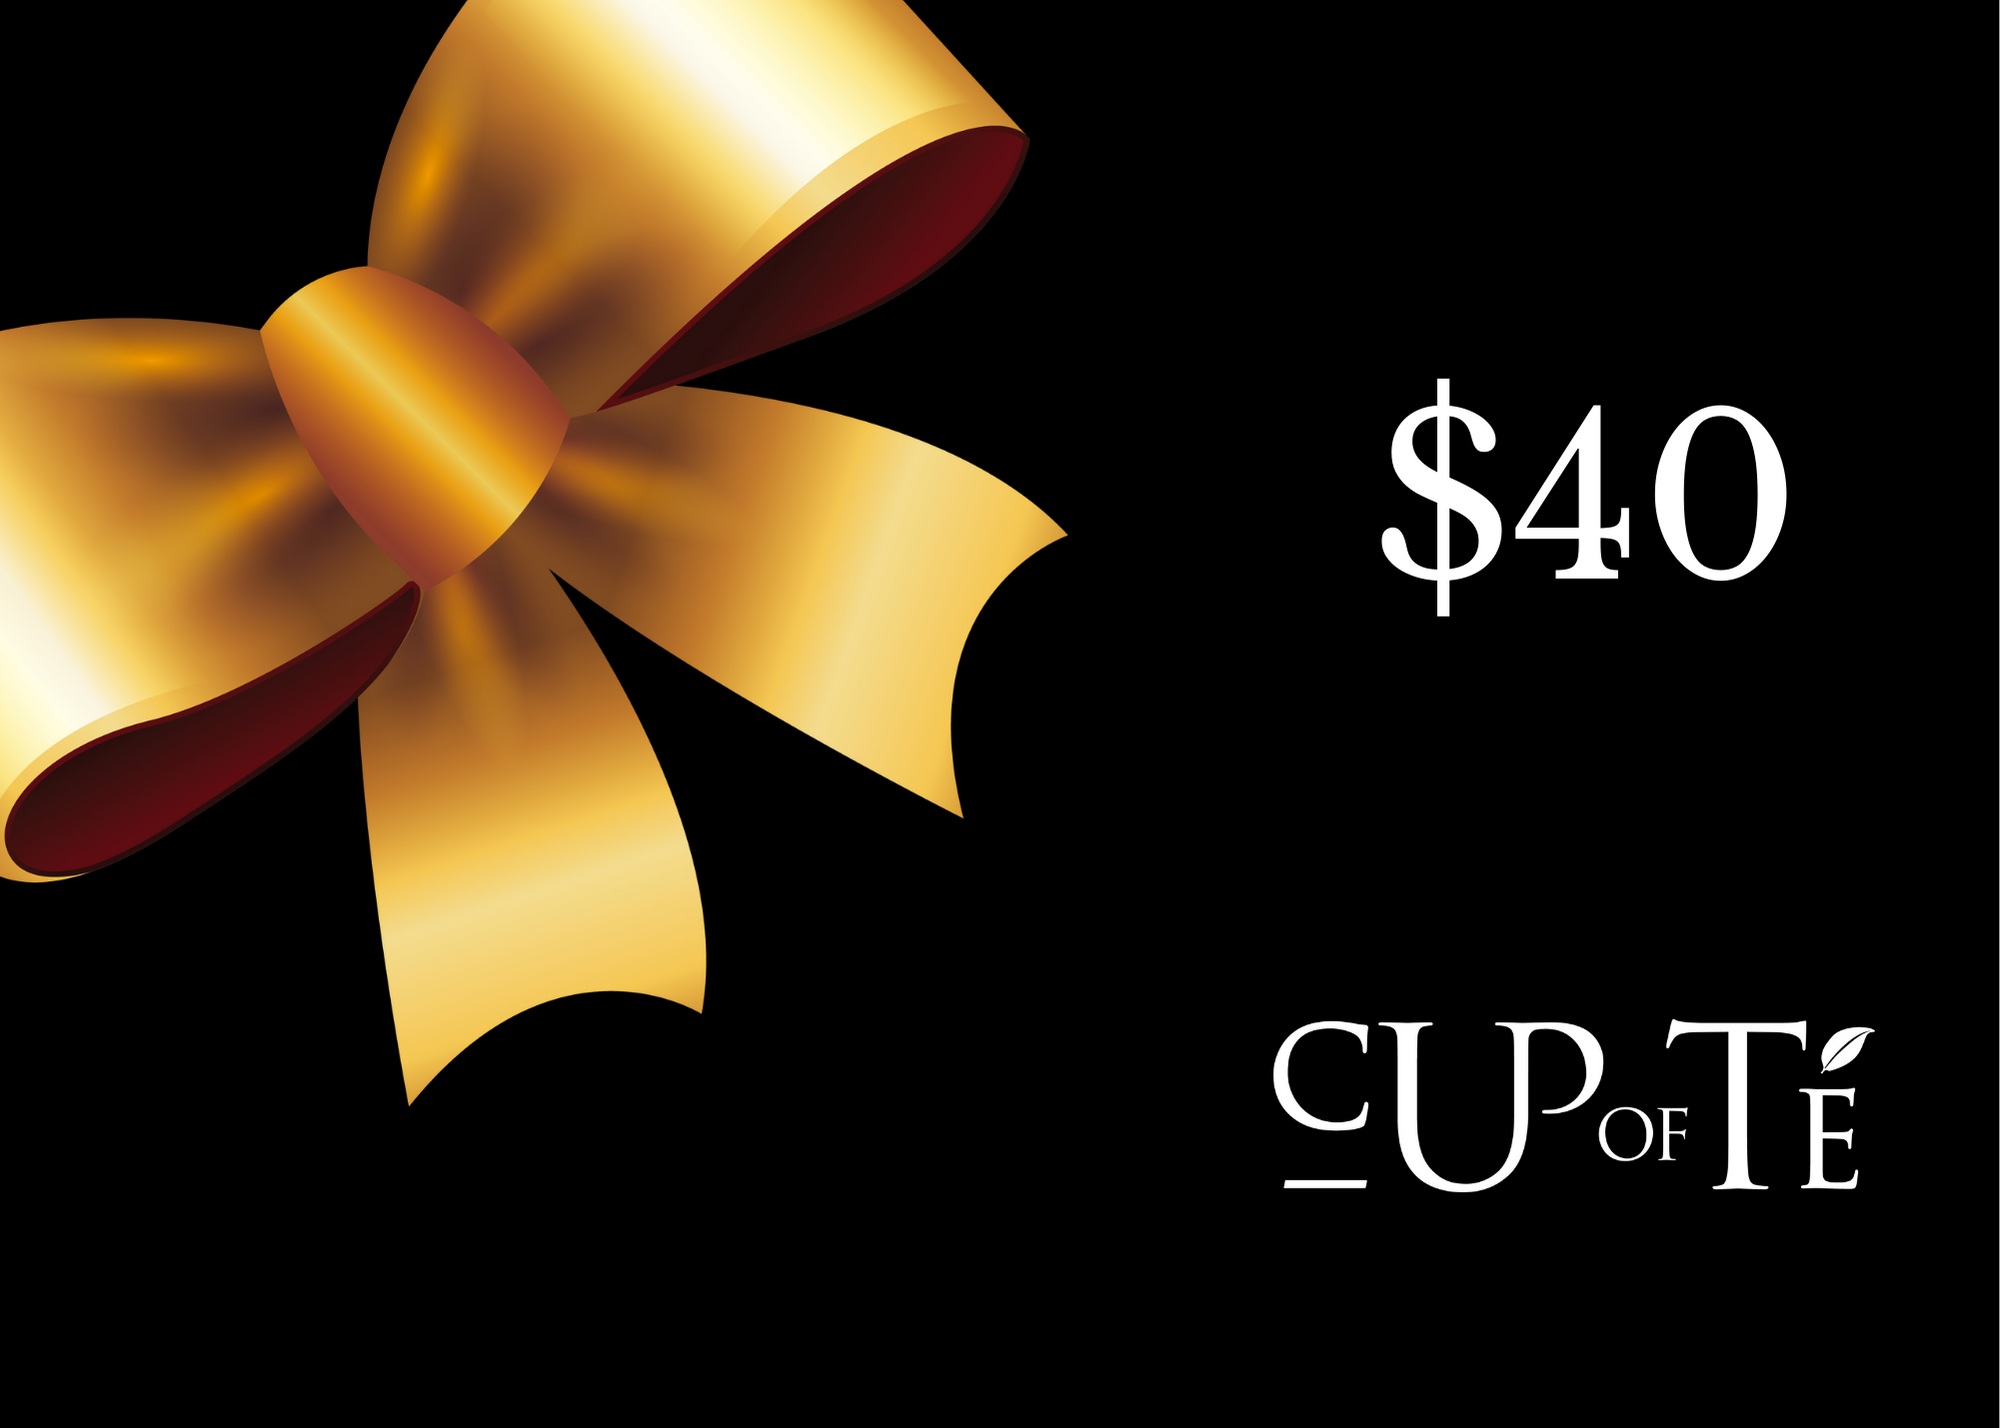 Cup of Té Gift Card